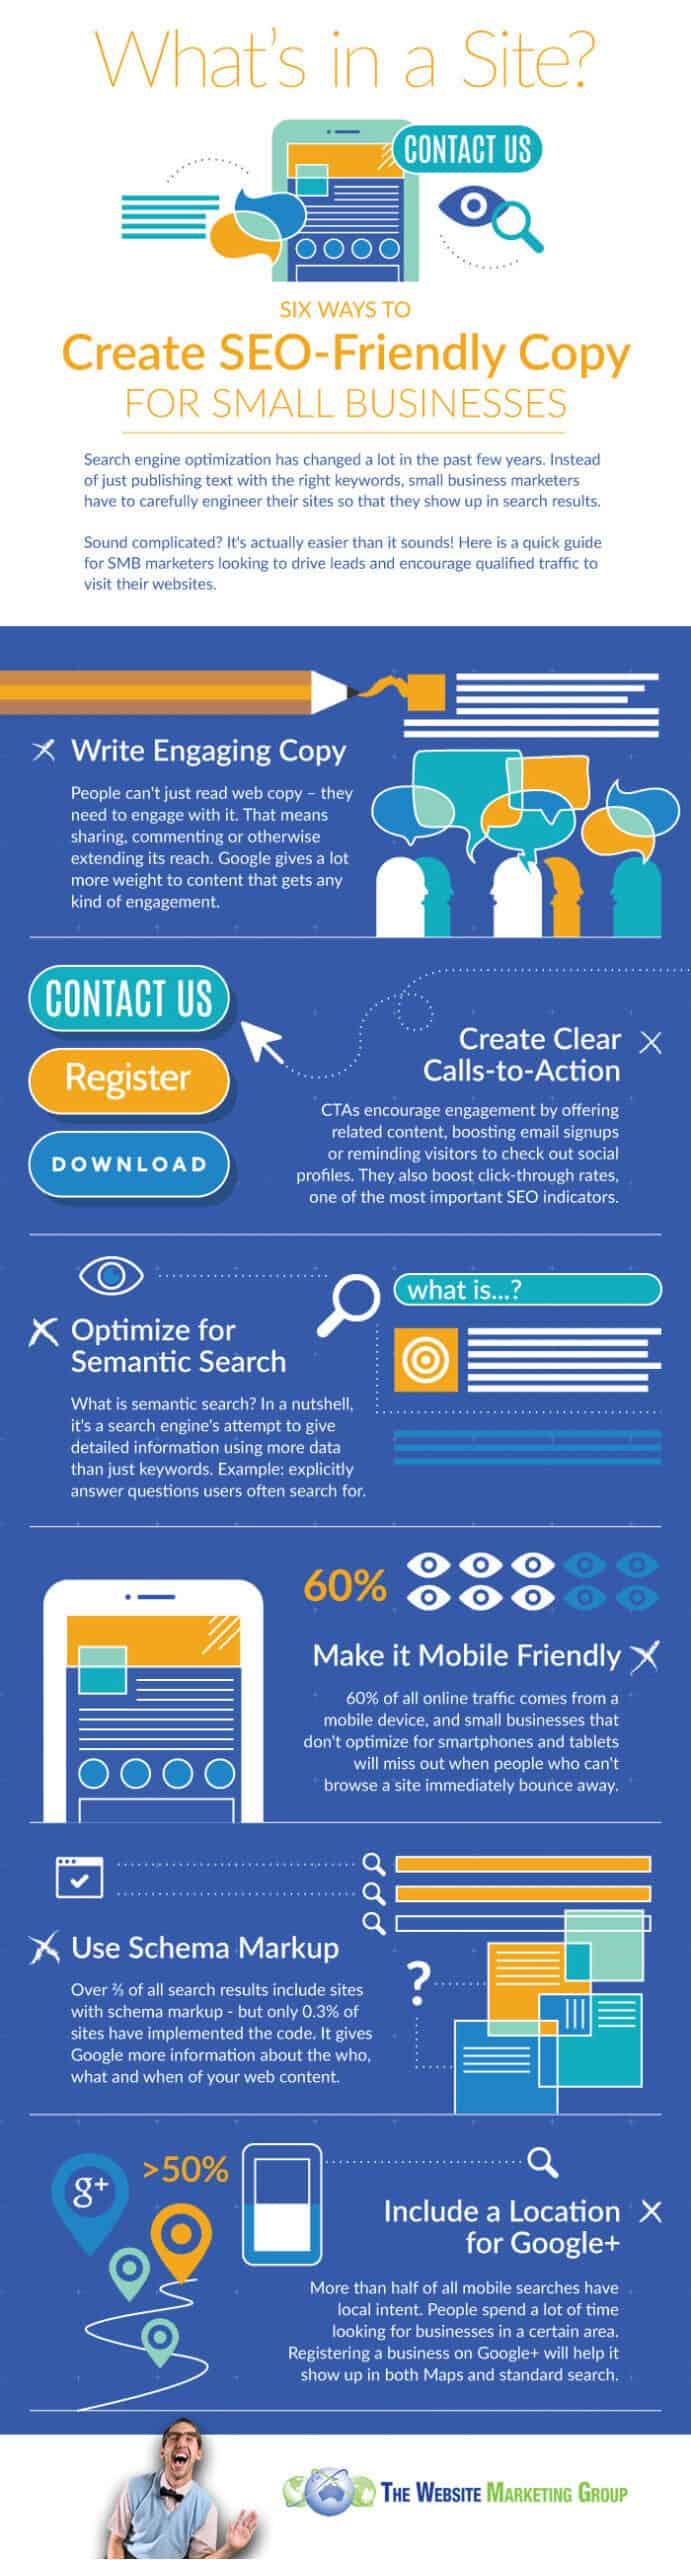 Learn these 6 great ways to create SEO-friendly copy, in the awesome infographic.